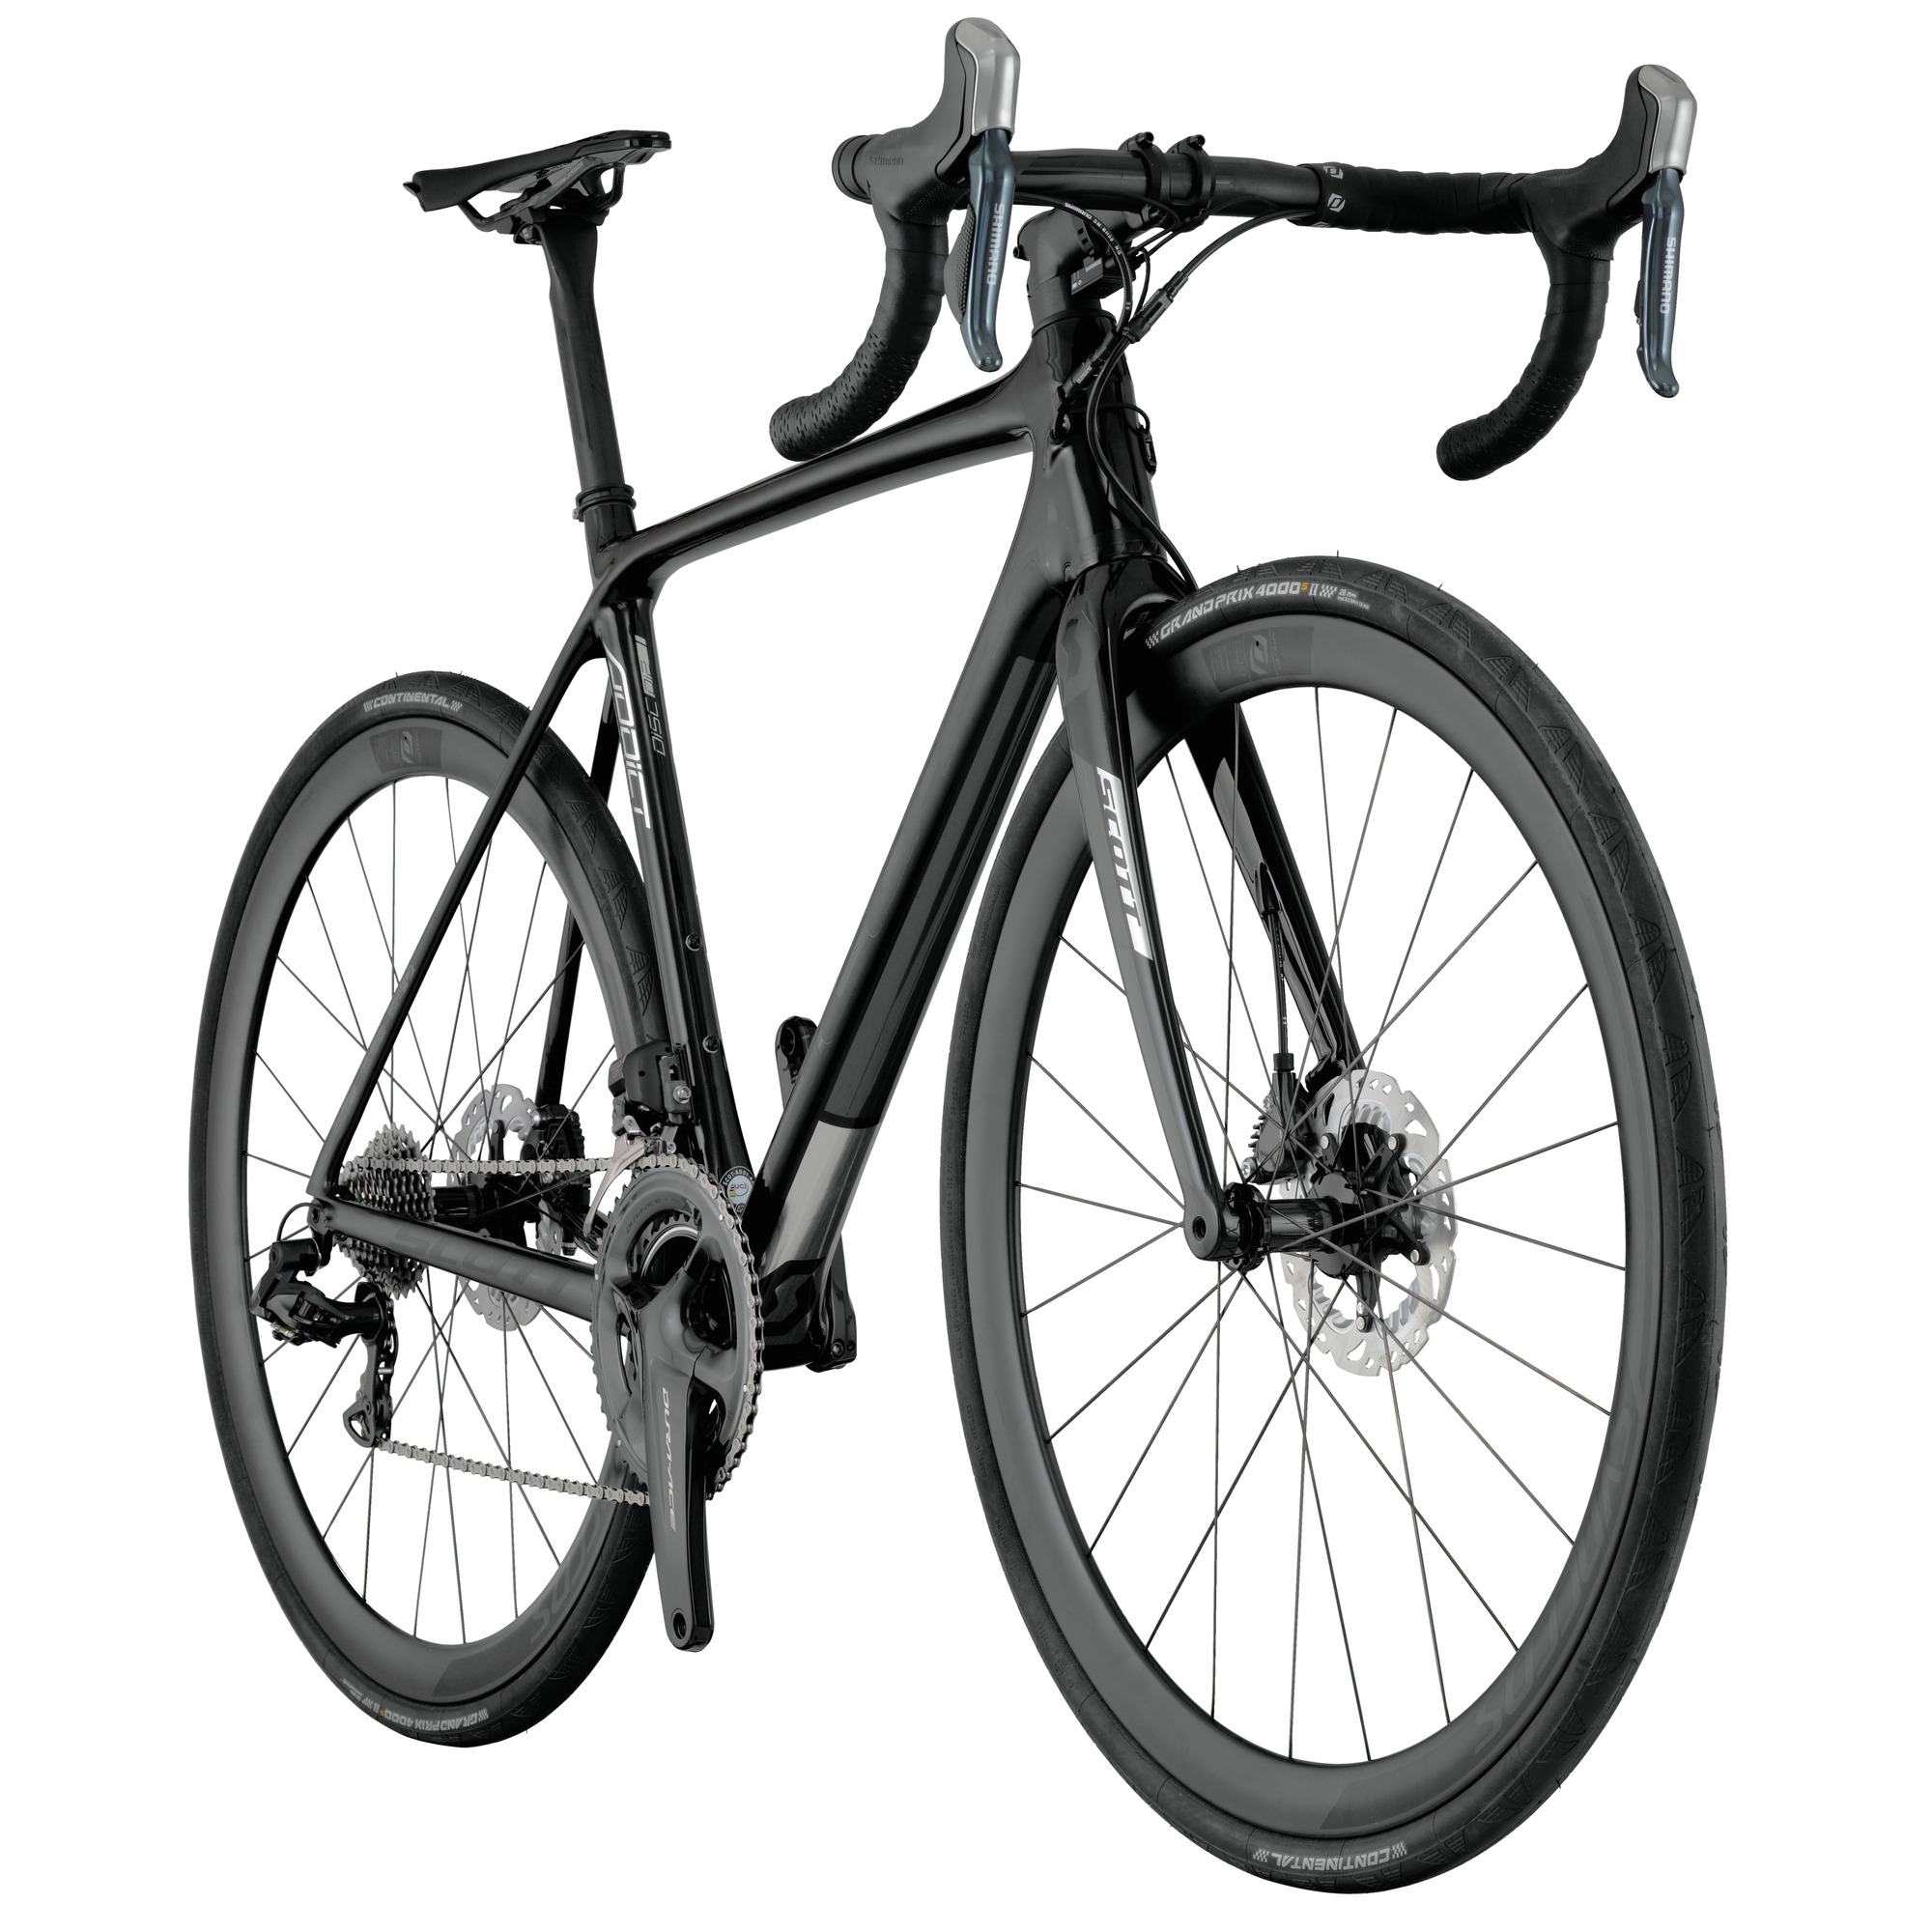 SCOTT Addict Premium Disc Di2 Bike